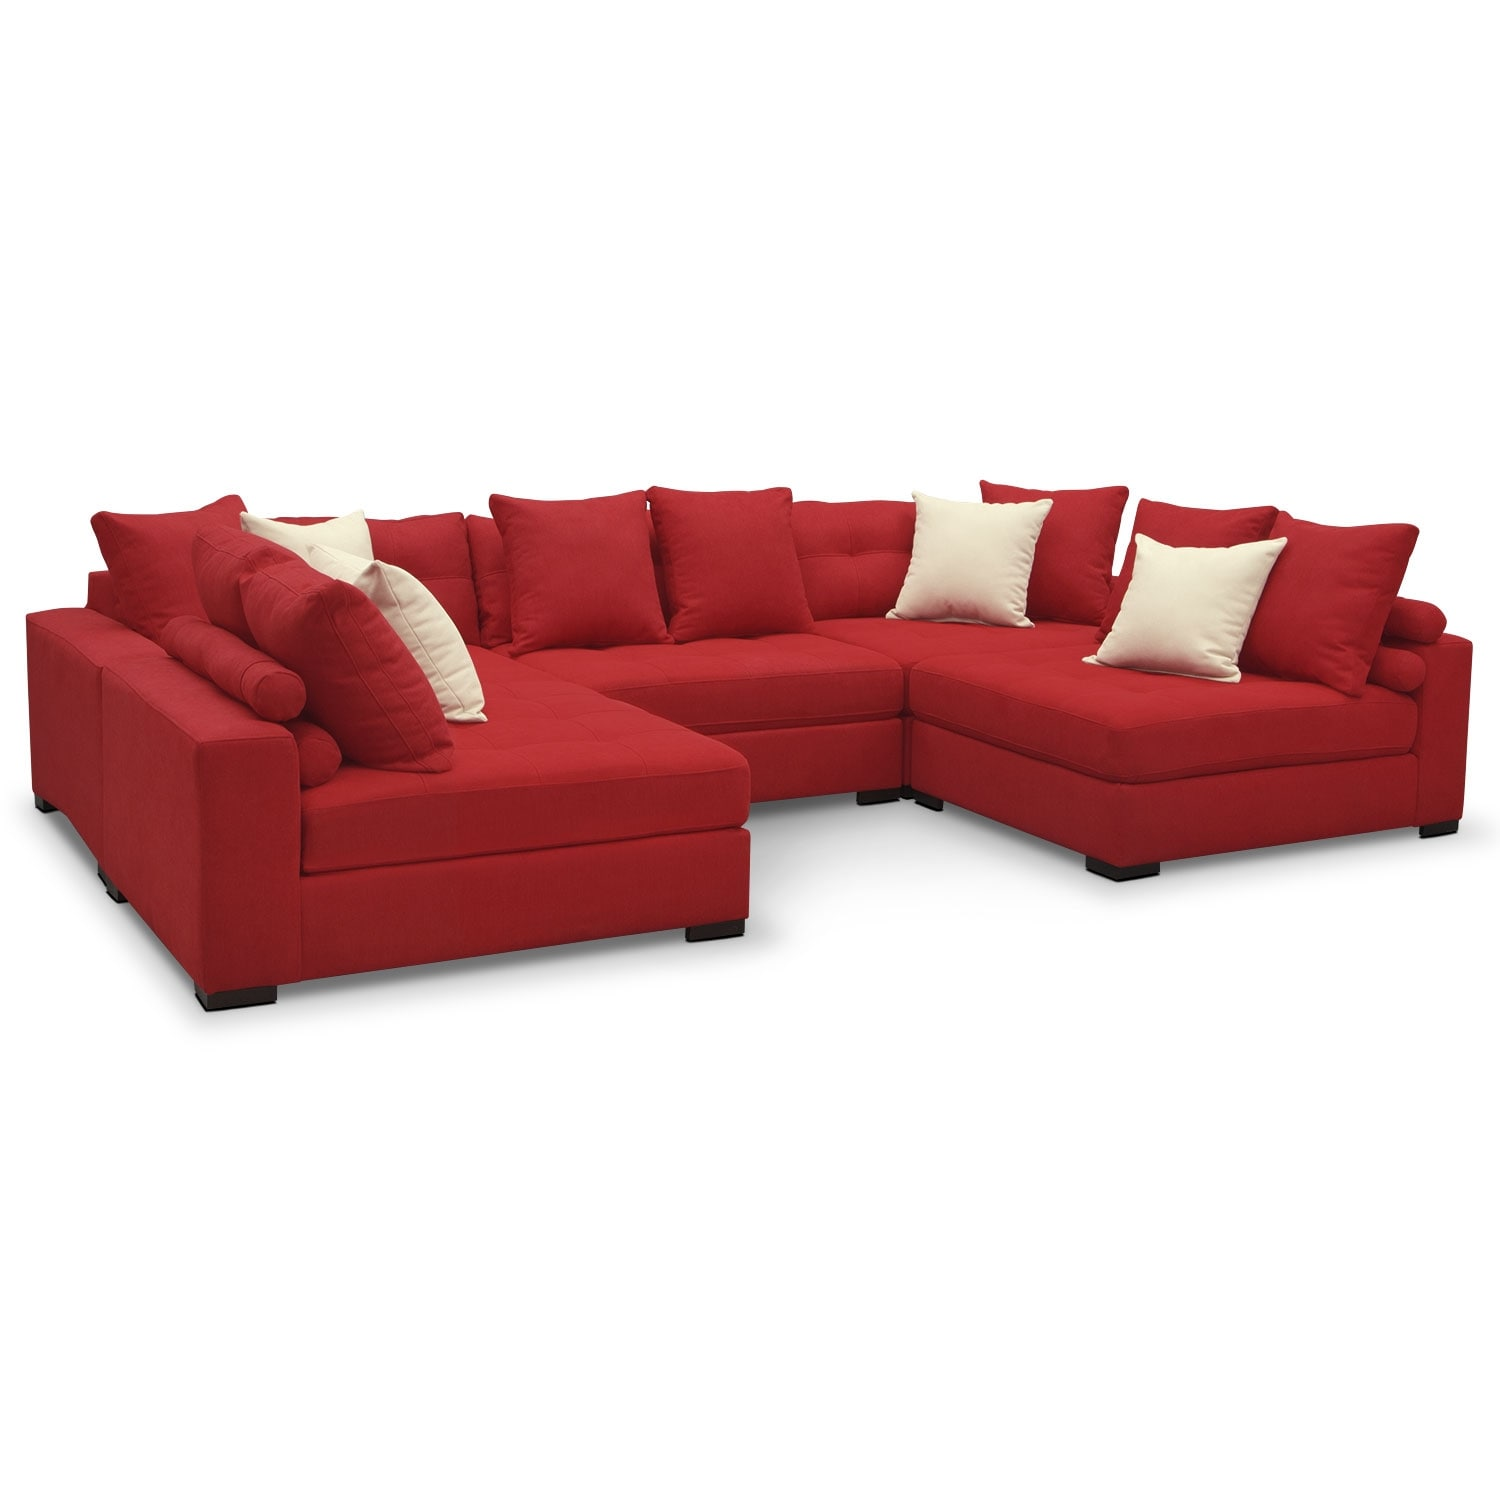 Living Room Furniture - Venti 5-Piece Sectional - Red